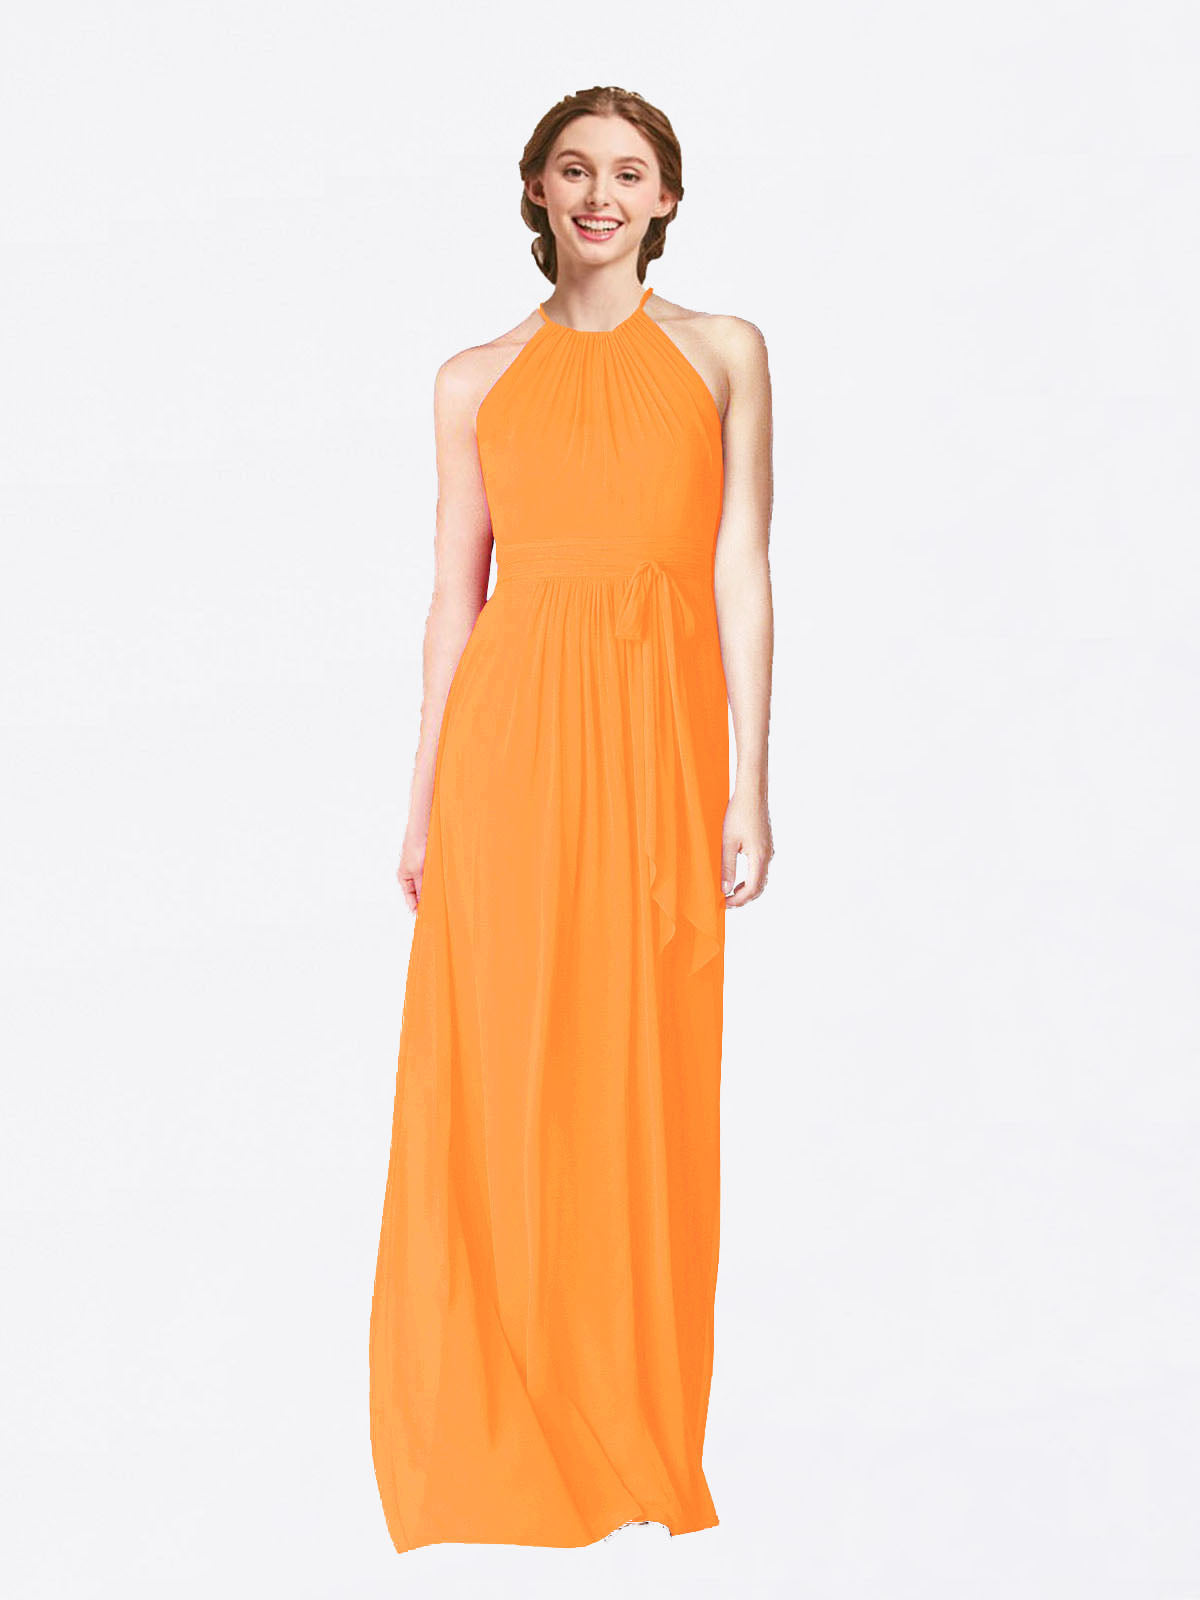 Long A-Line Halter Sleeveless Orange Chiffon Bridesmaid Dress Laura